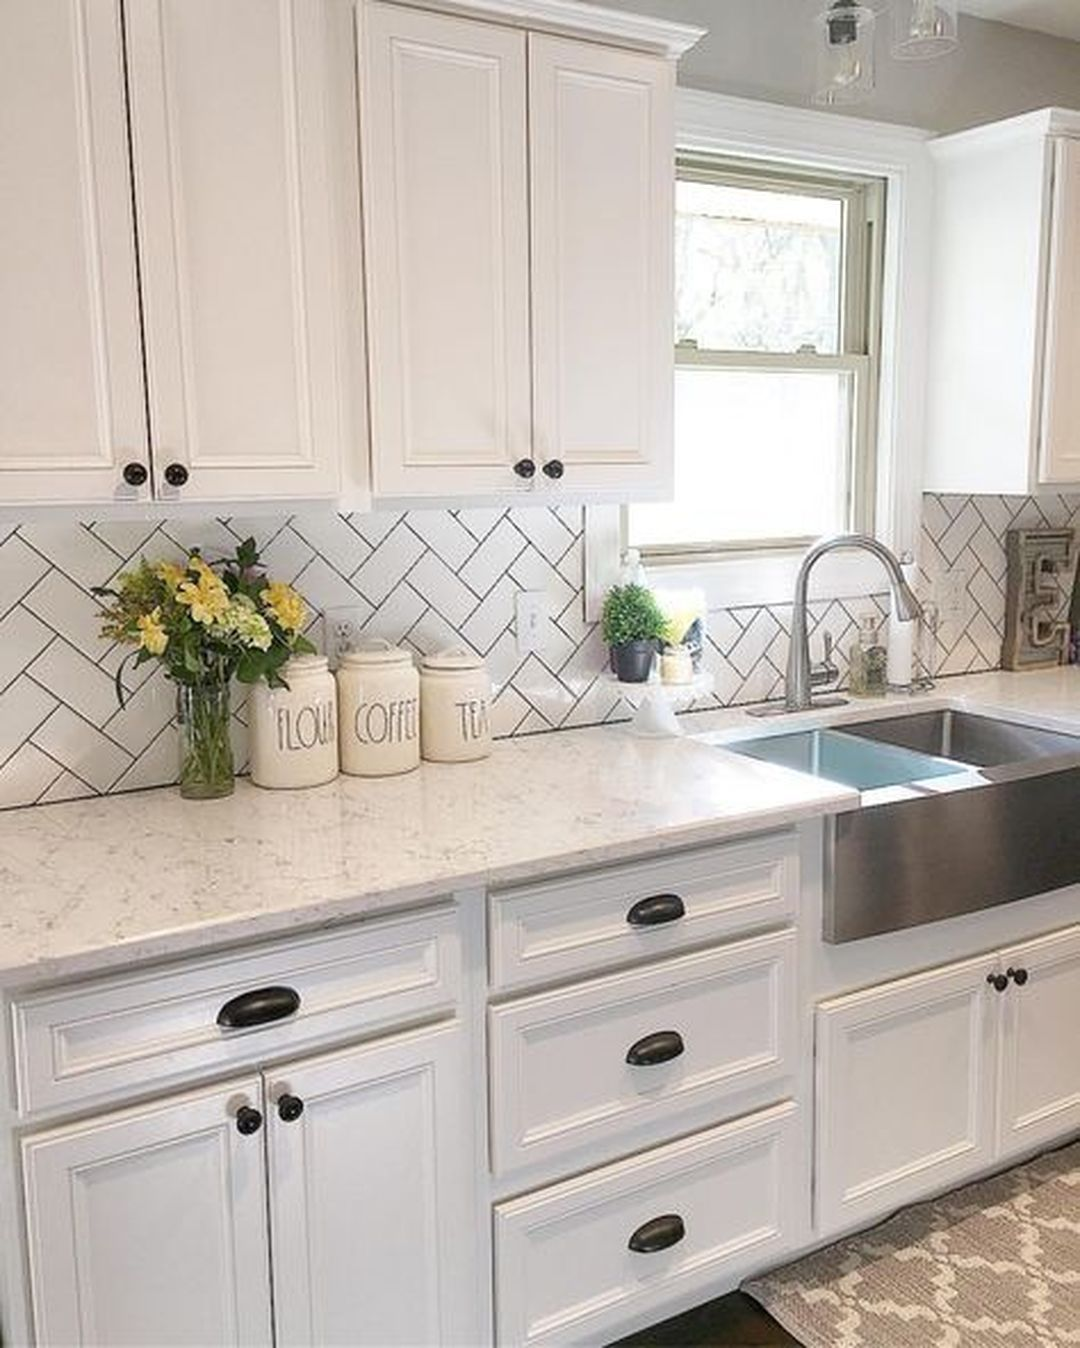 Kitchen Cabinet Makeovers On A Budget: Modern Farmhouse Kitchen Makeover On A Budget